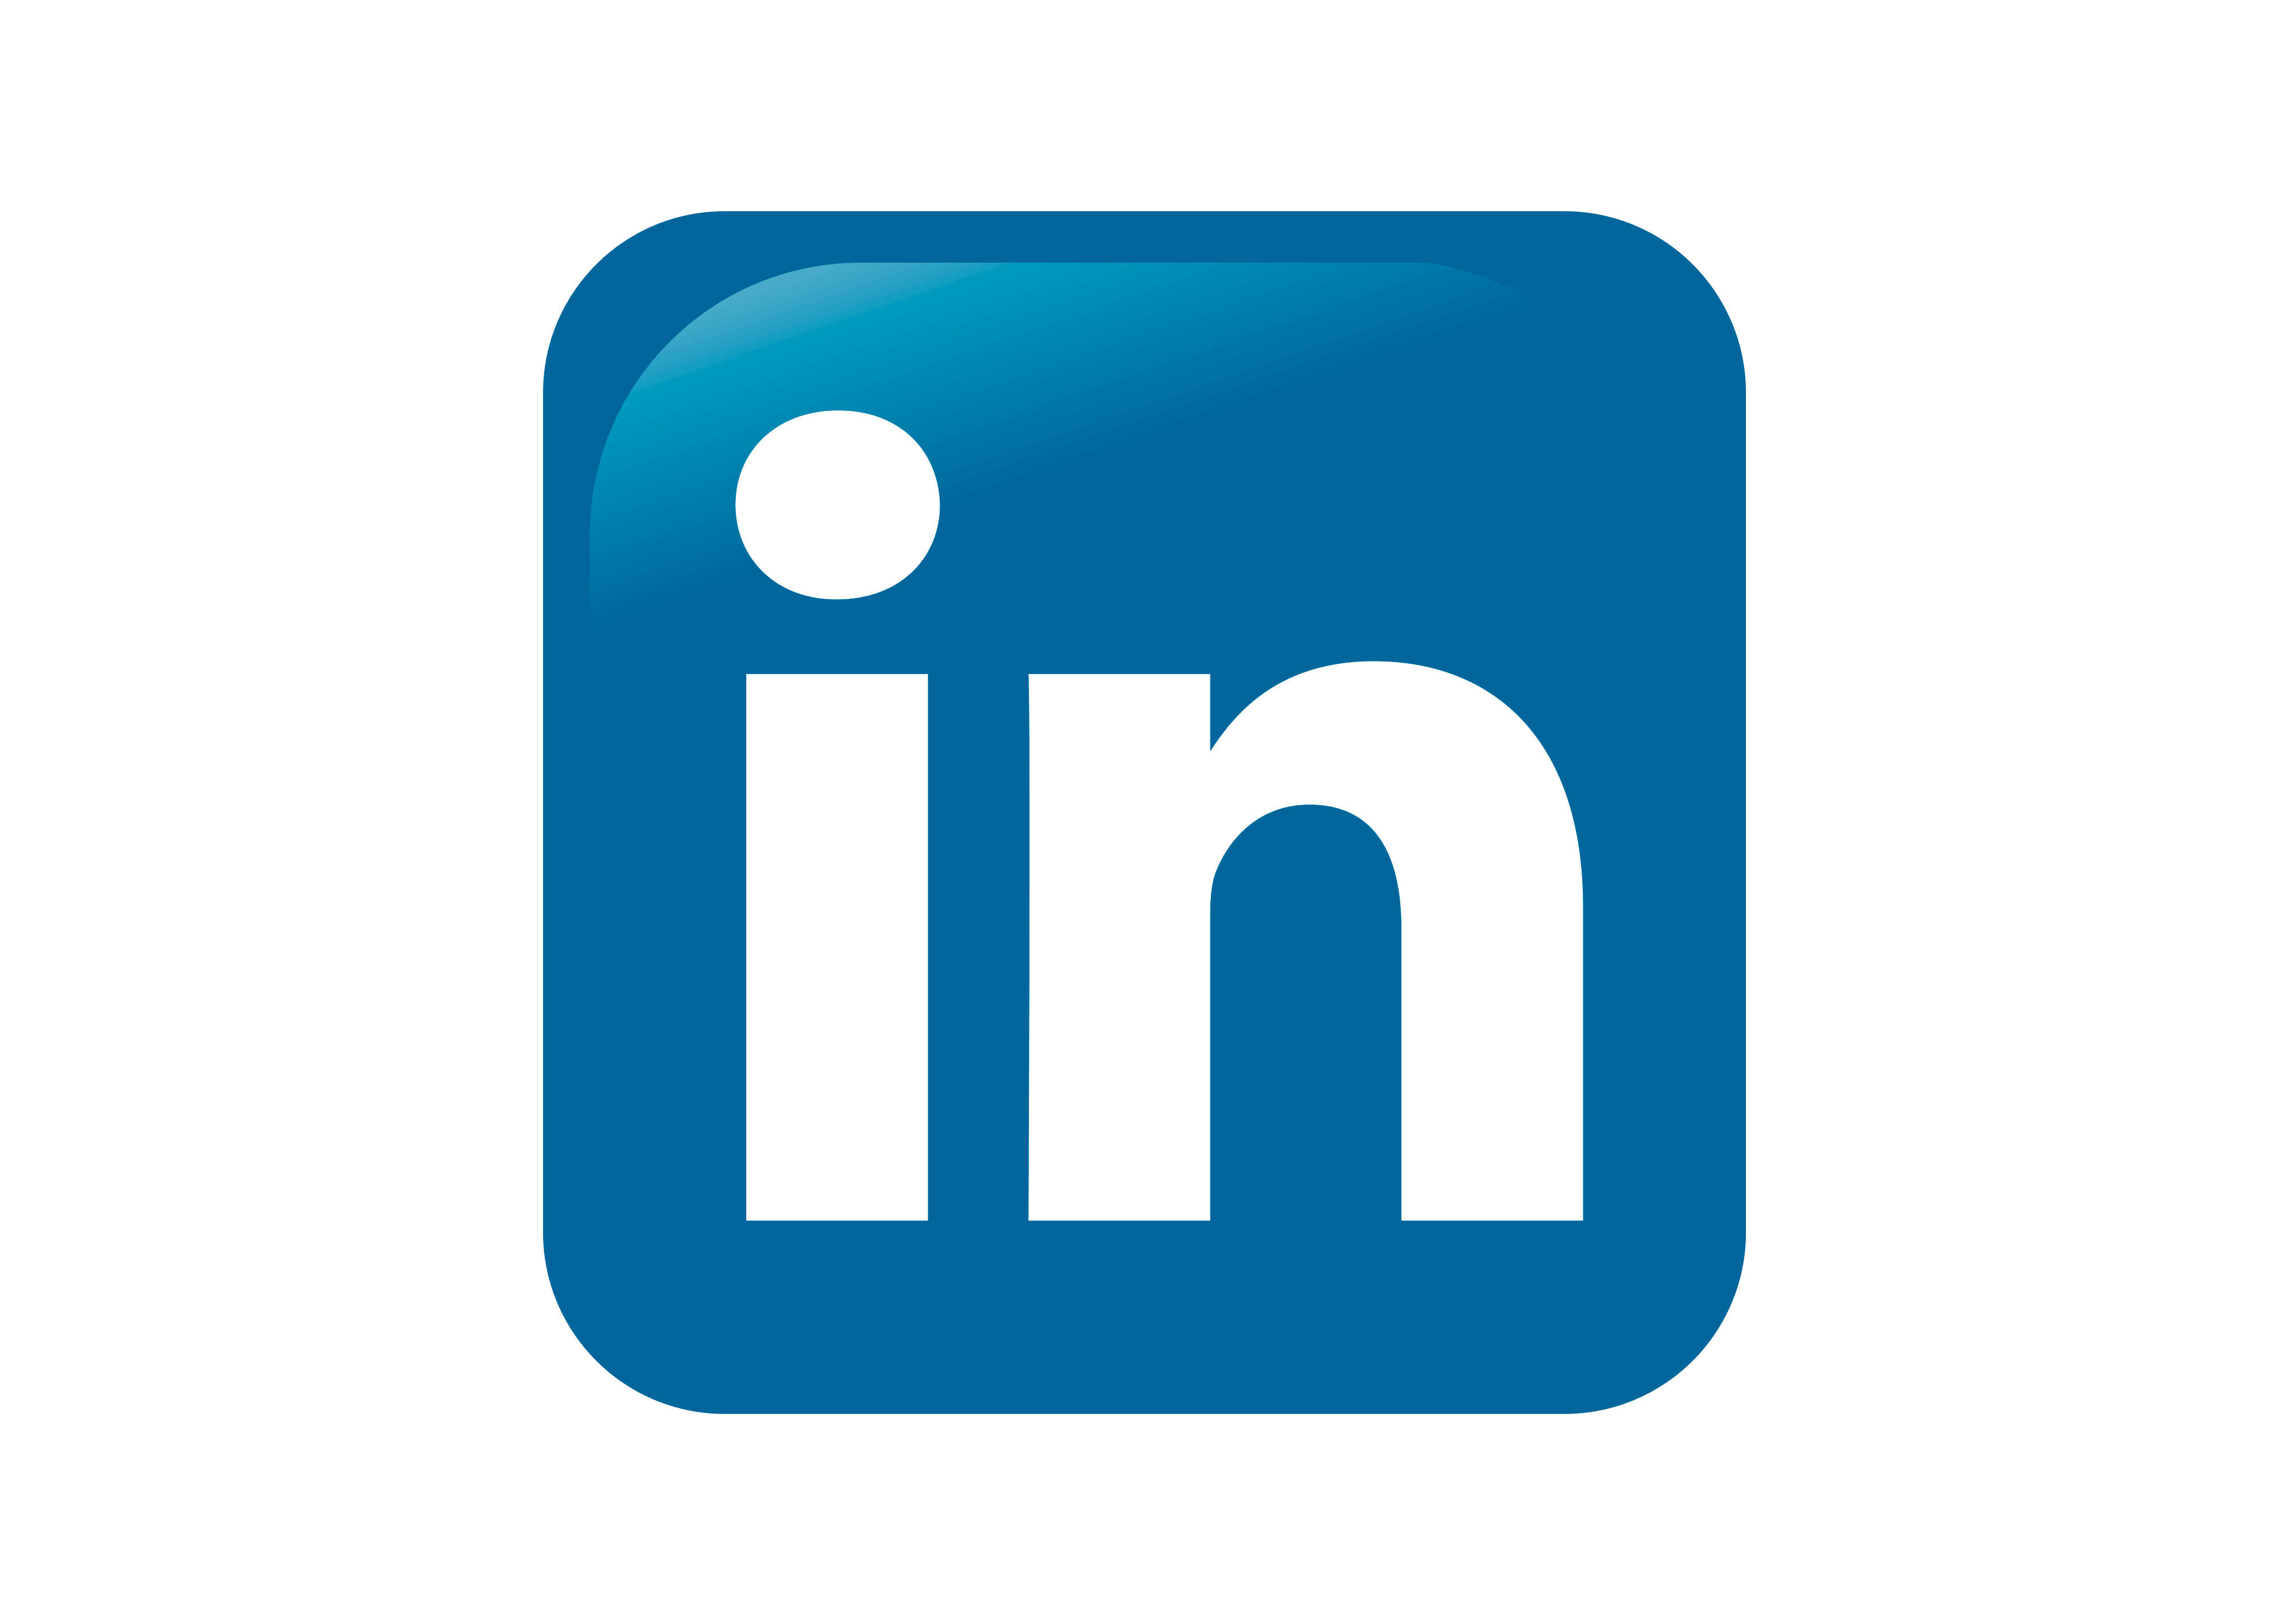 linkedin symbol transparent